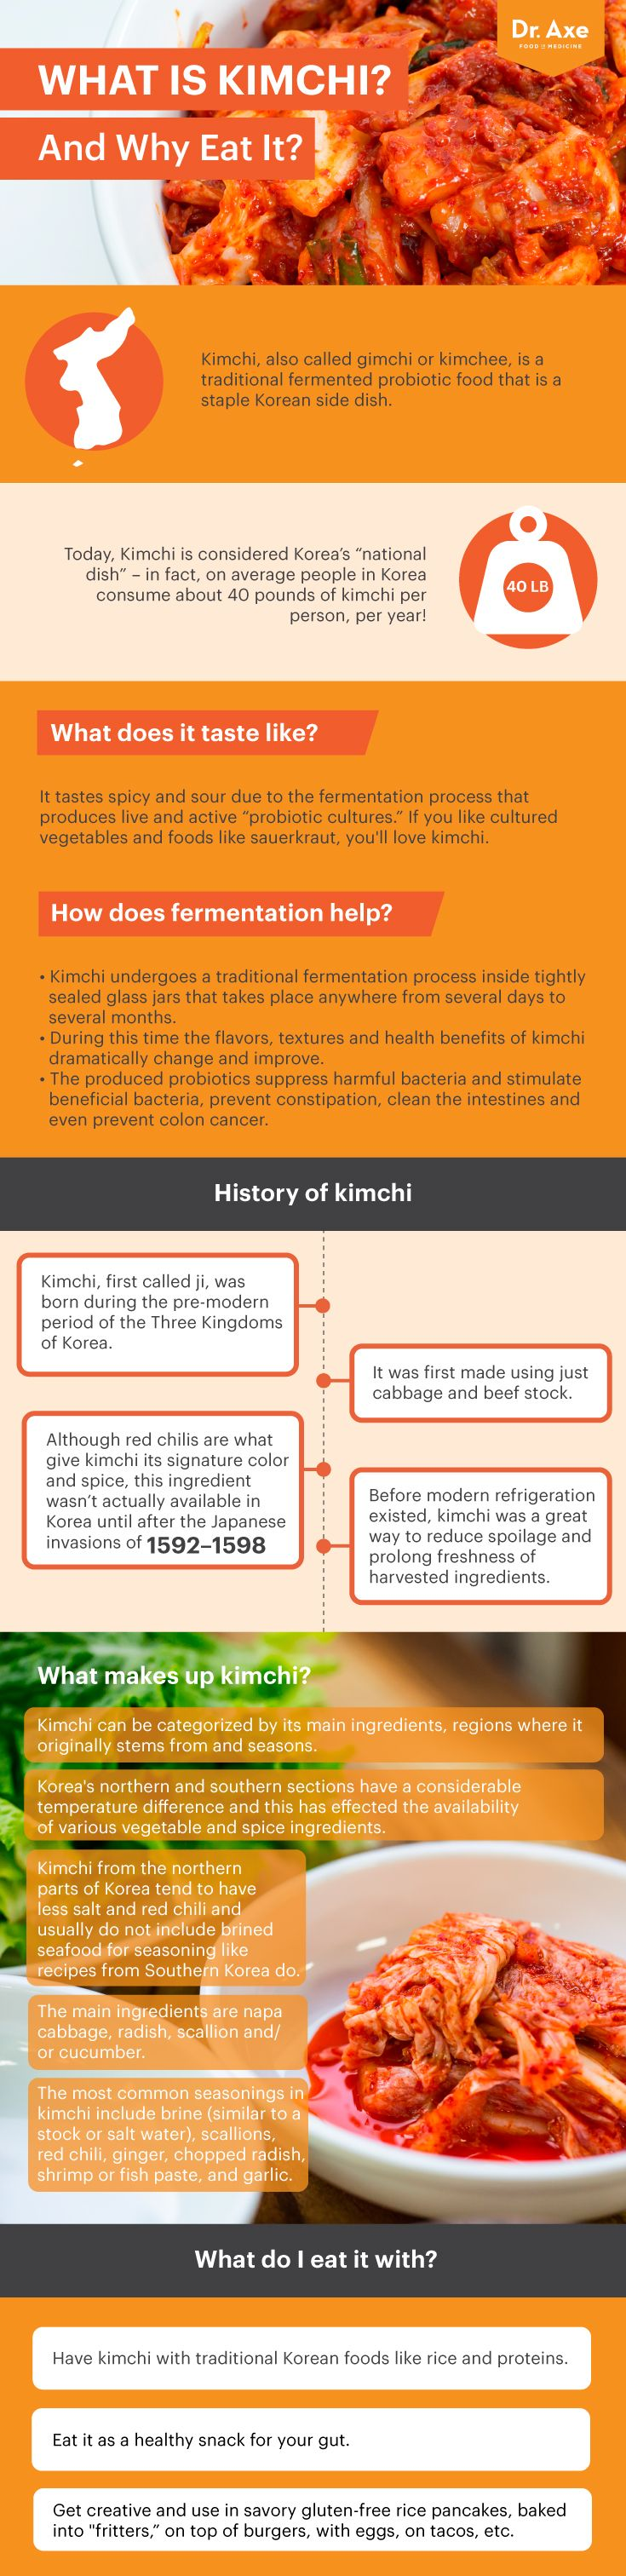 Guide to kimchi - Dr. Axe http://www.draxe.com #health #holistic #natural